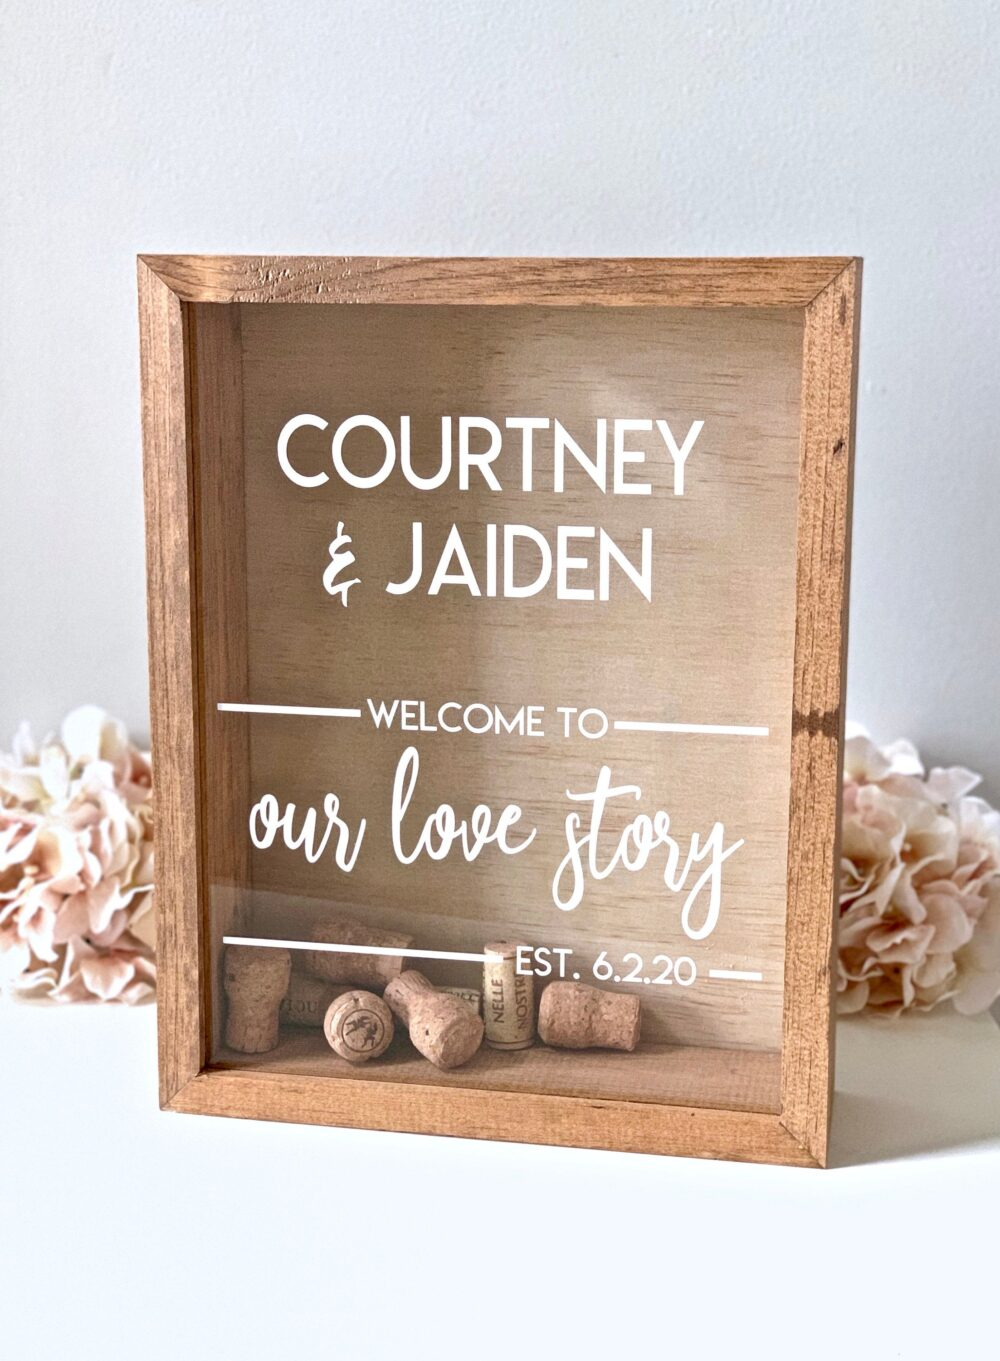 Wine Cork Holder | Sign A Wedding Guest Book Alternative Rustic Wood Shadow Box Display For Corks, Photos, Messages & Much More